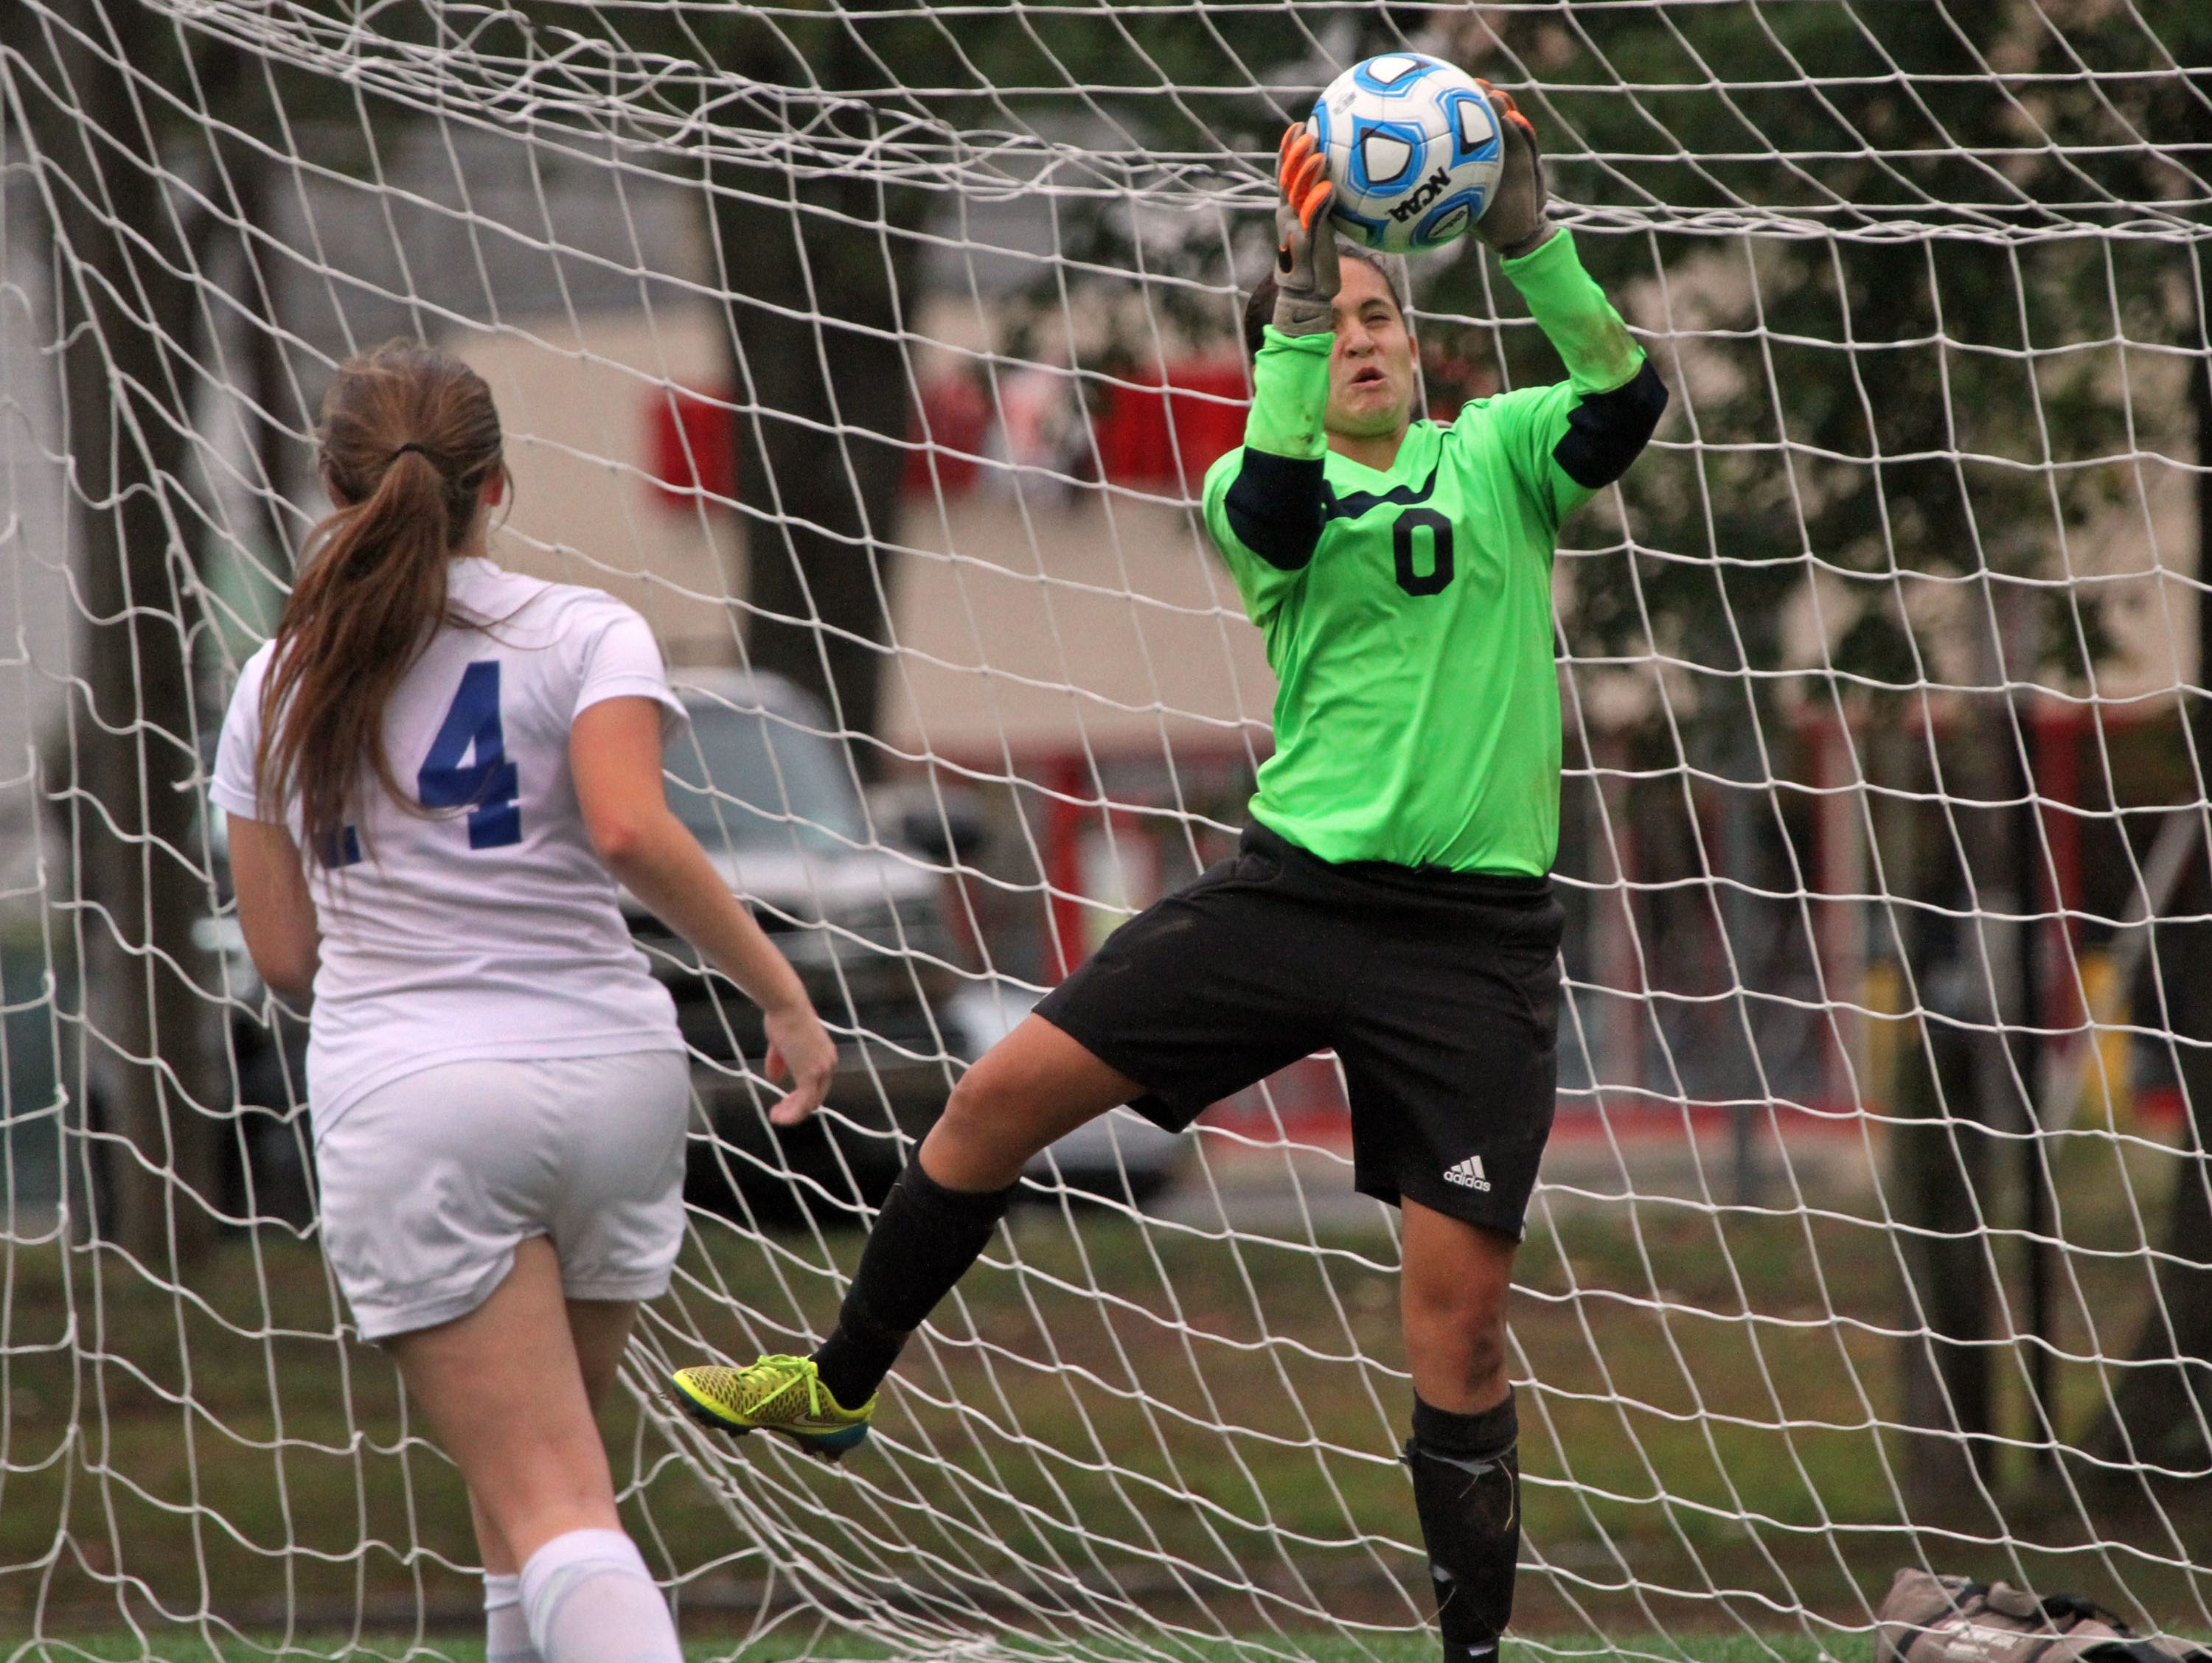 Middlesex goalie Nicole Fallon makes a save in girls soccer game versus Metuchen at home.